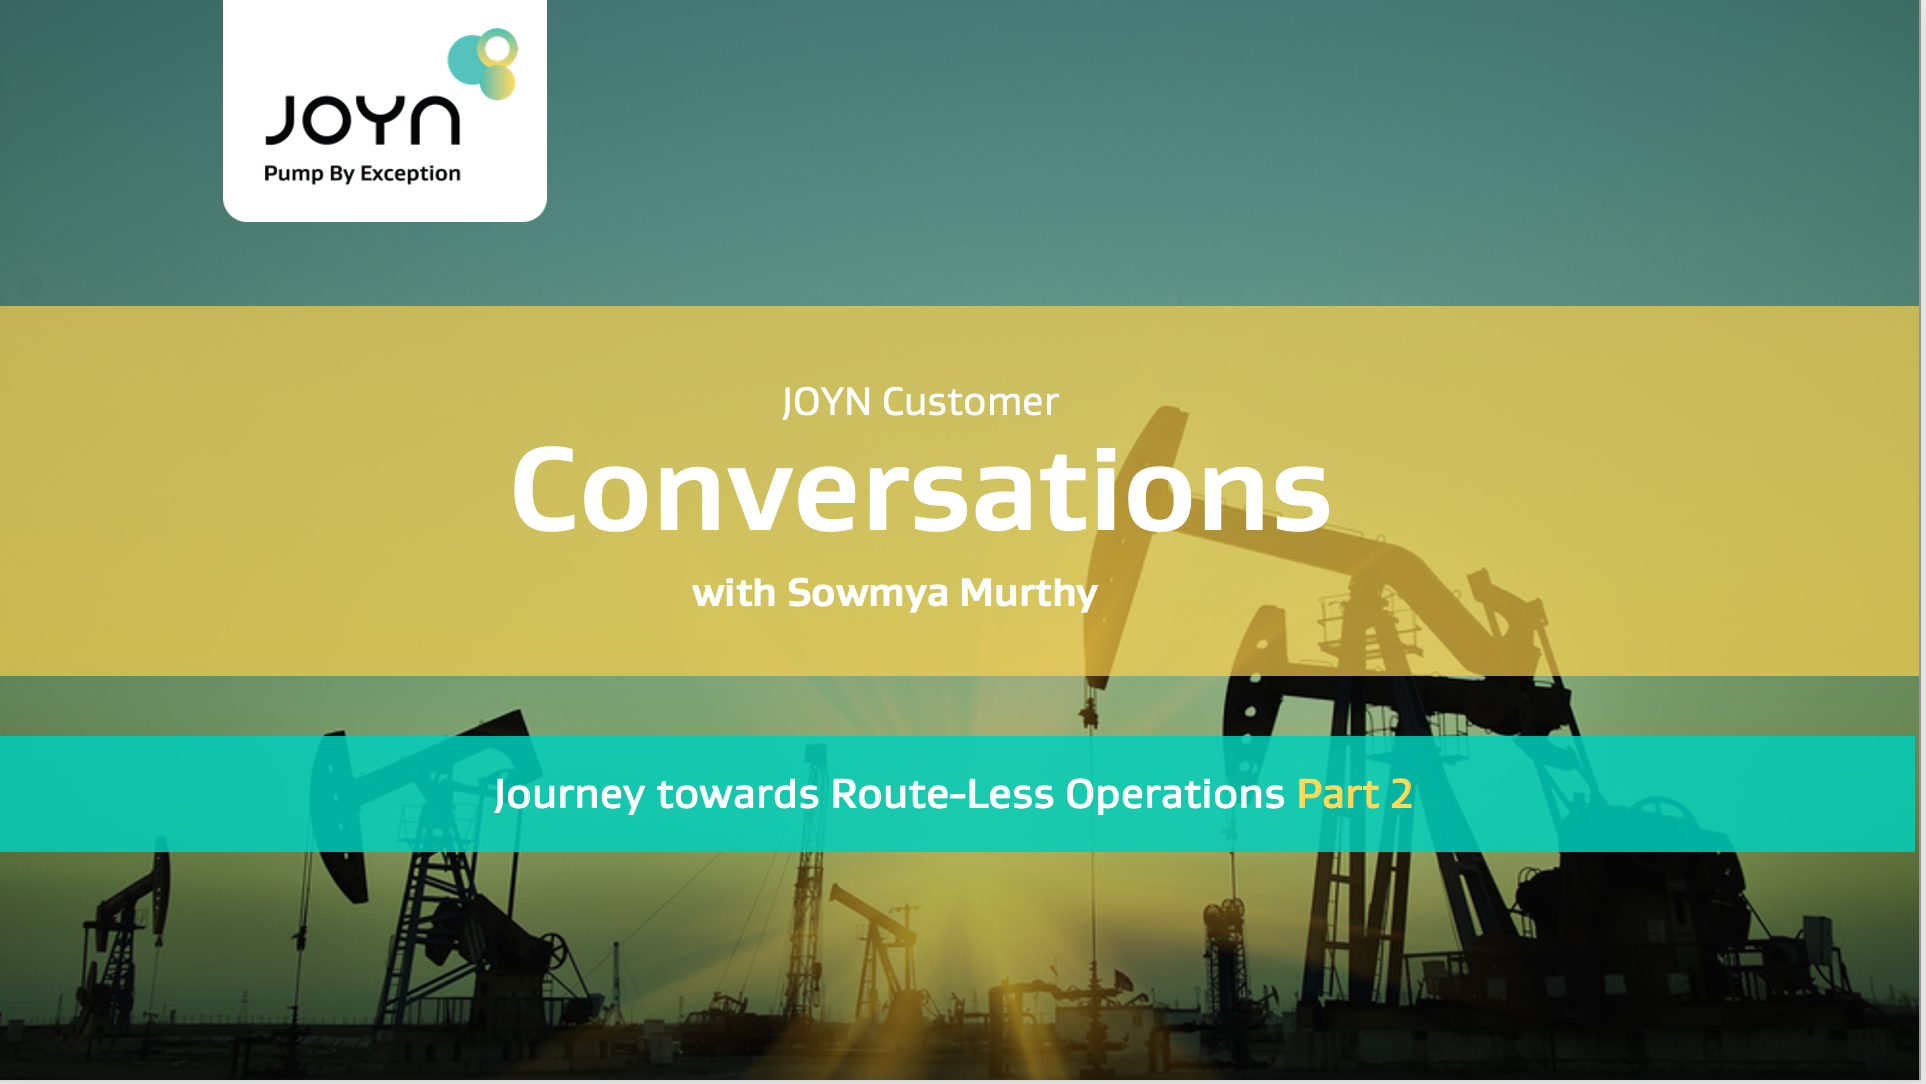 Journey towards Route-Less Operations - Part 2